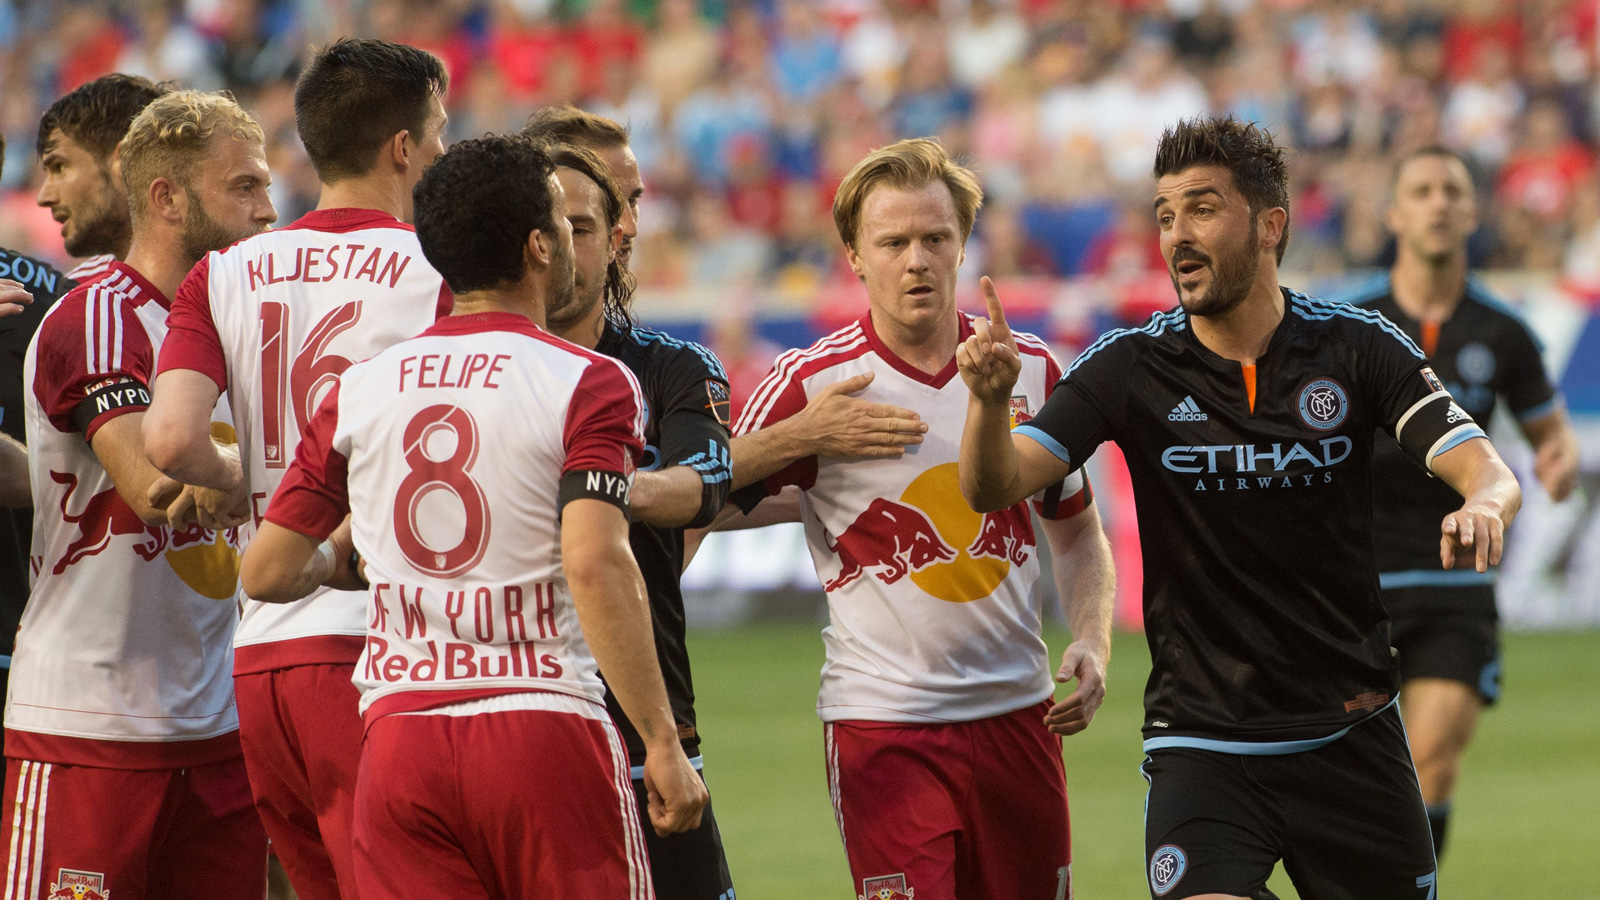 NYCFC captain David Villa, right, takes exception with Red Bulls midfielders Felipe, Dax McCarty and Sacha Kljestan in a heated moment in NYCFC's first match against the Red Bulls.